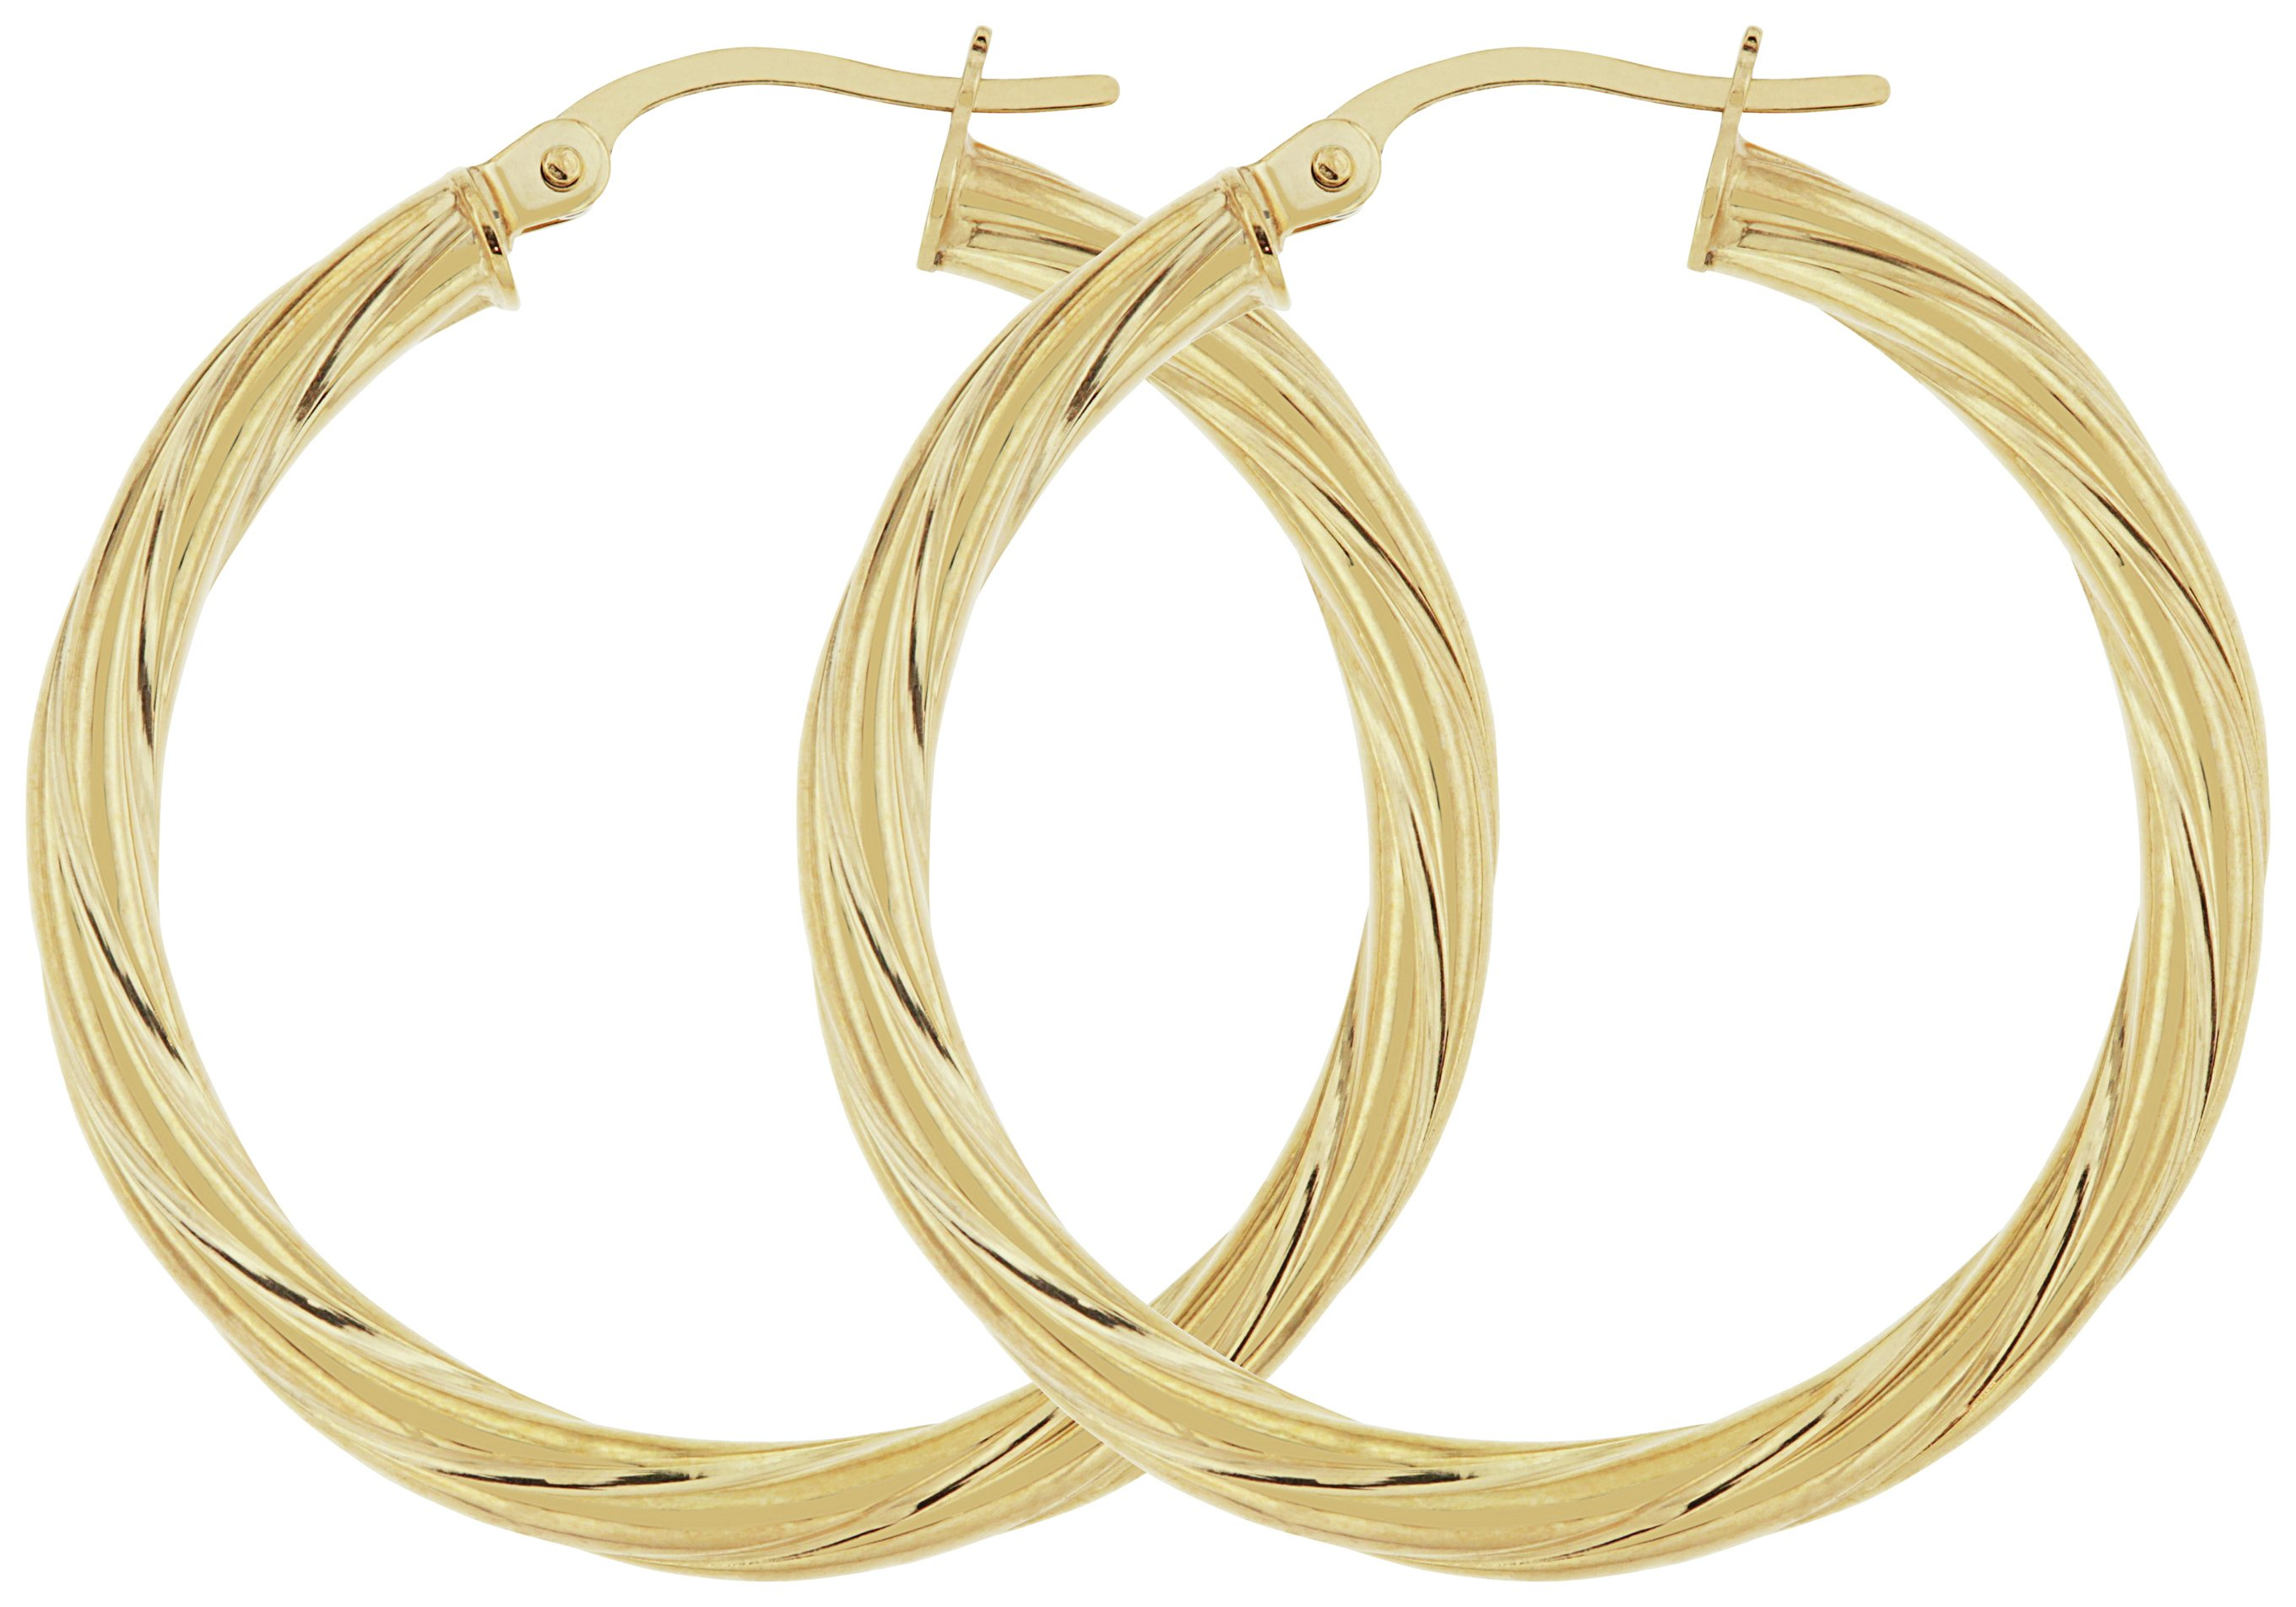 Image of Bracci - 9 Carat Gold - 30mm Twist - Hoop Earrings.